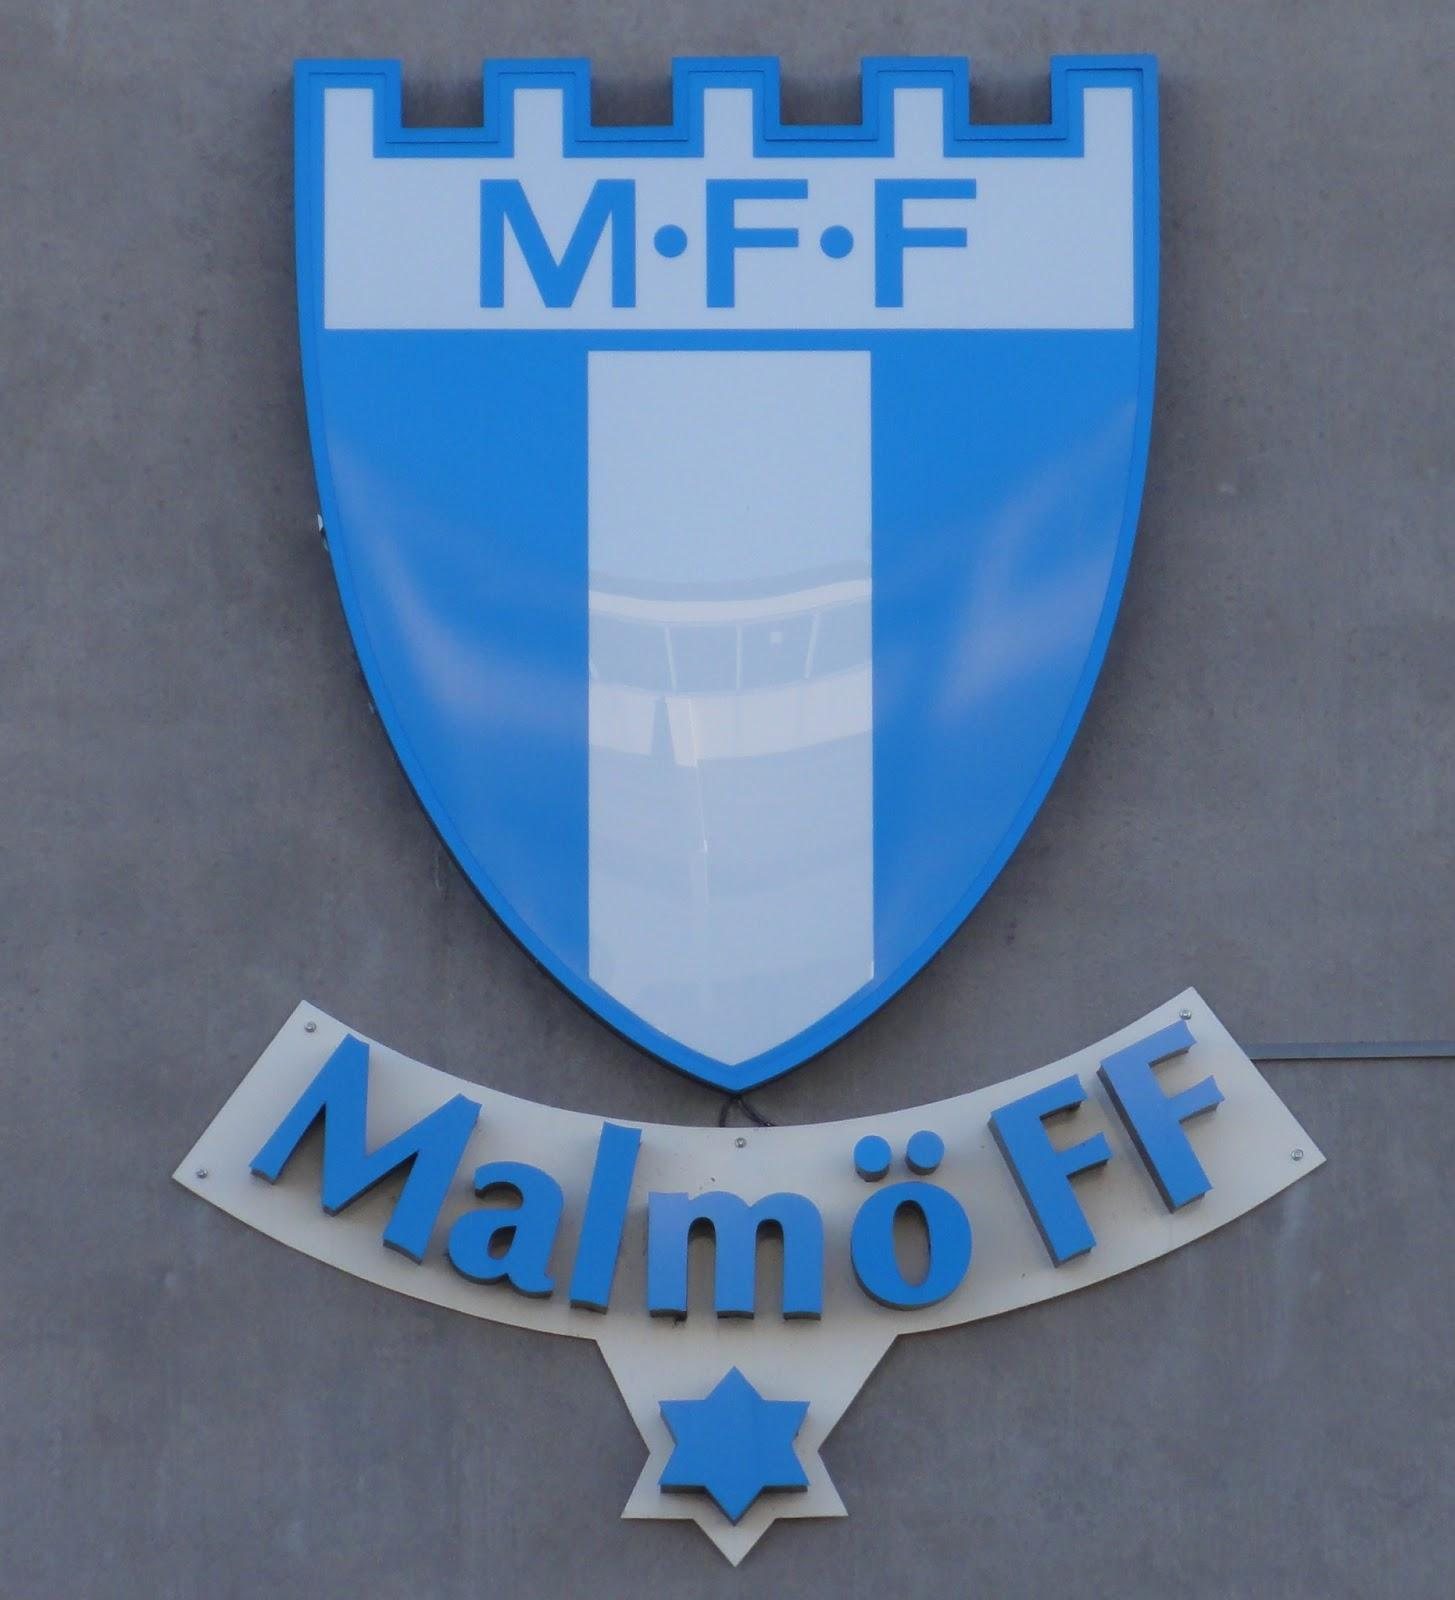 THE CHICKEN BALTI CHRONICLES: MALMO FF